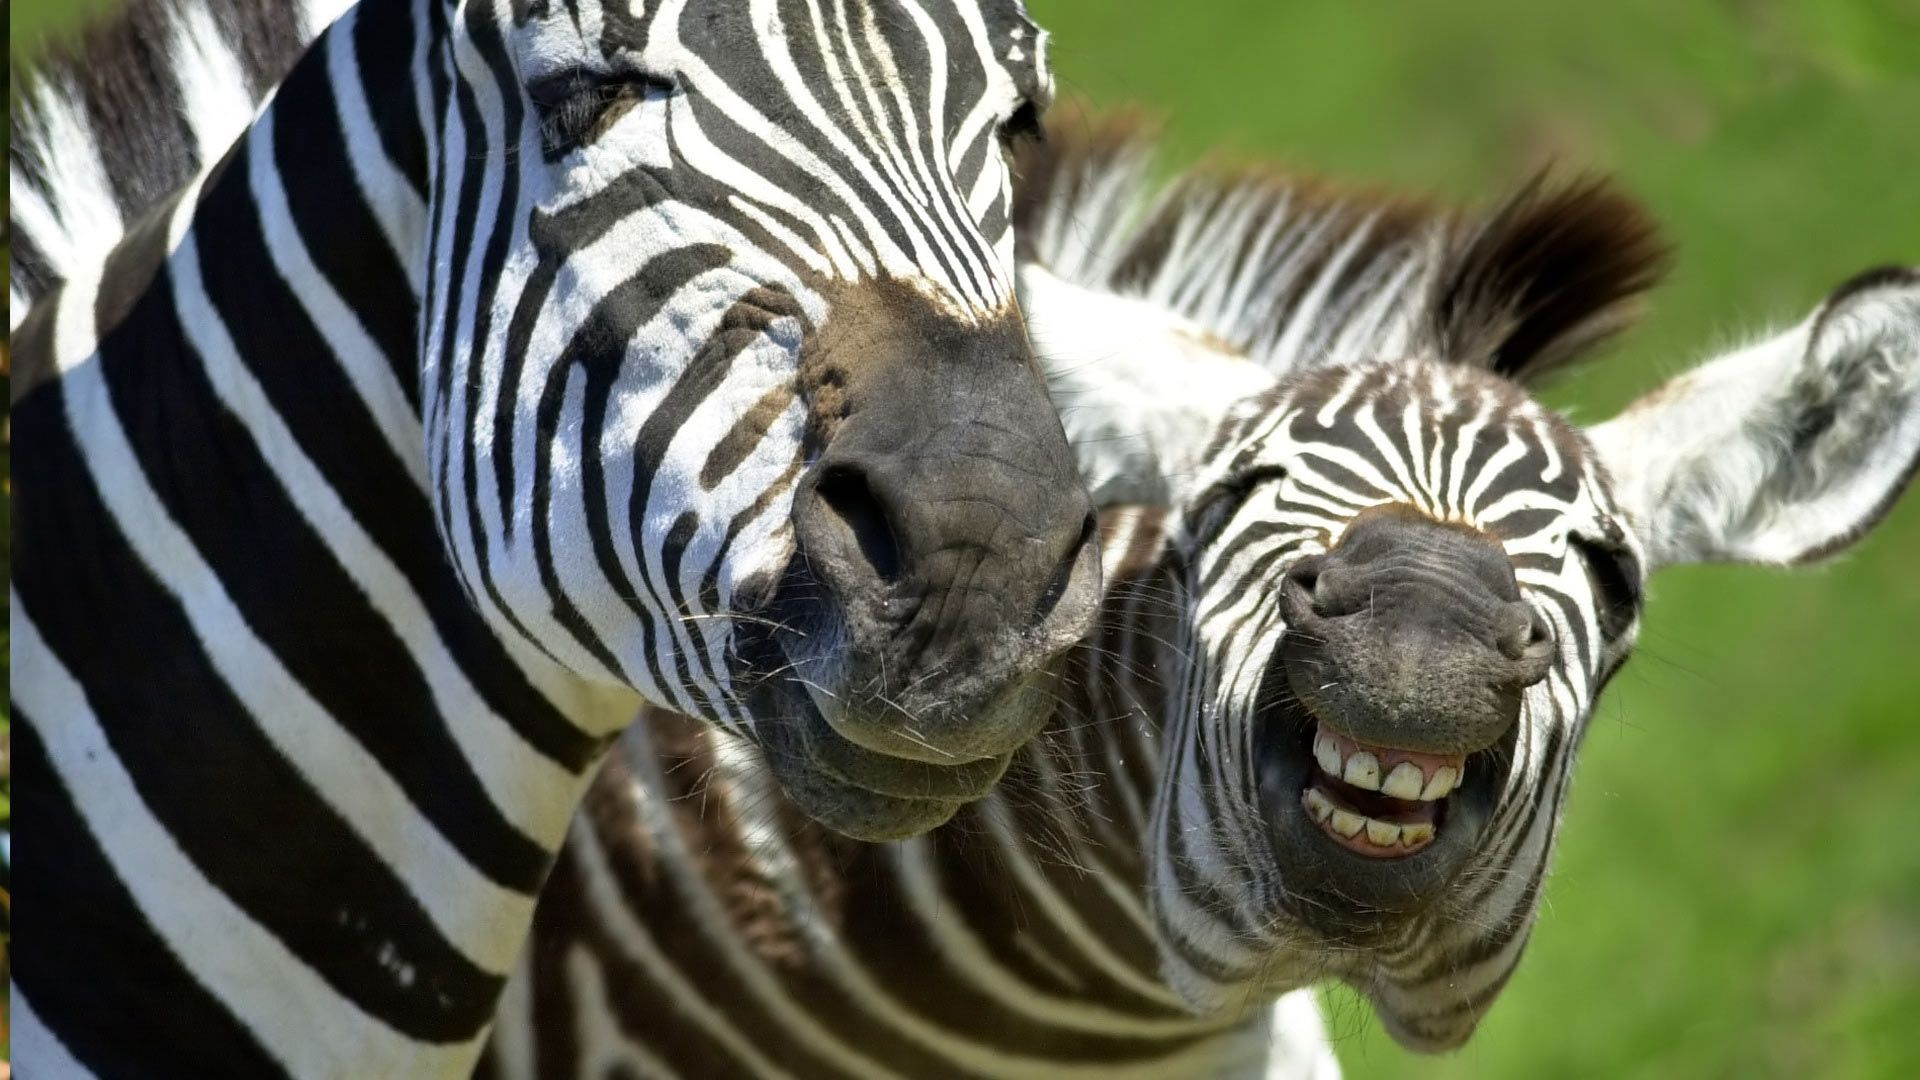 Wallpapersxl Business Cards Zebra Hd 1920x1080 Cool Pictures Of Animals Animal Wallpaper Animals Are Beautiful People